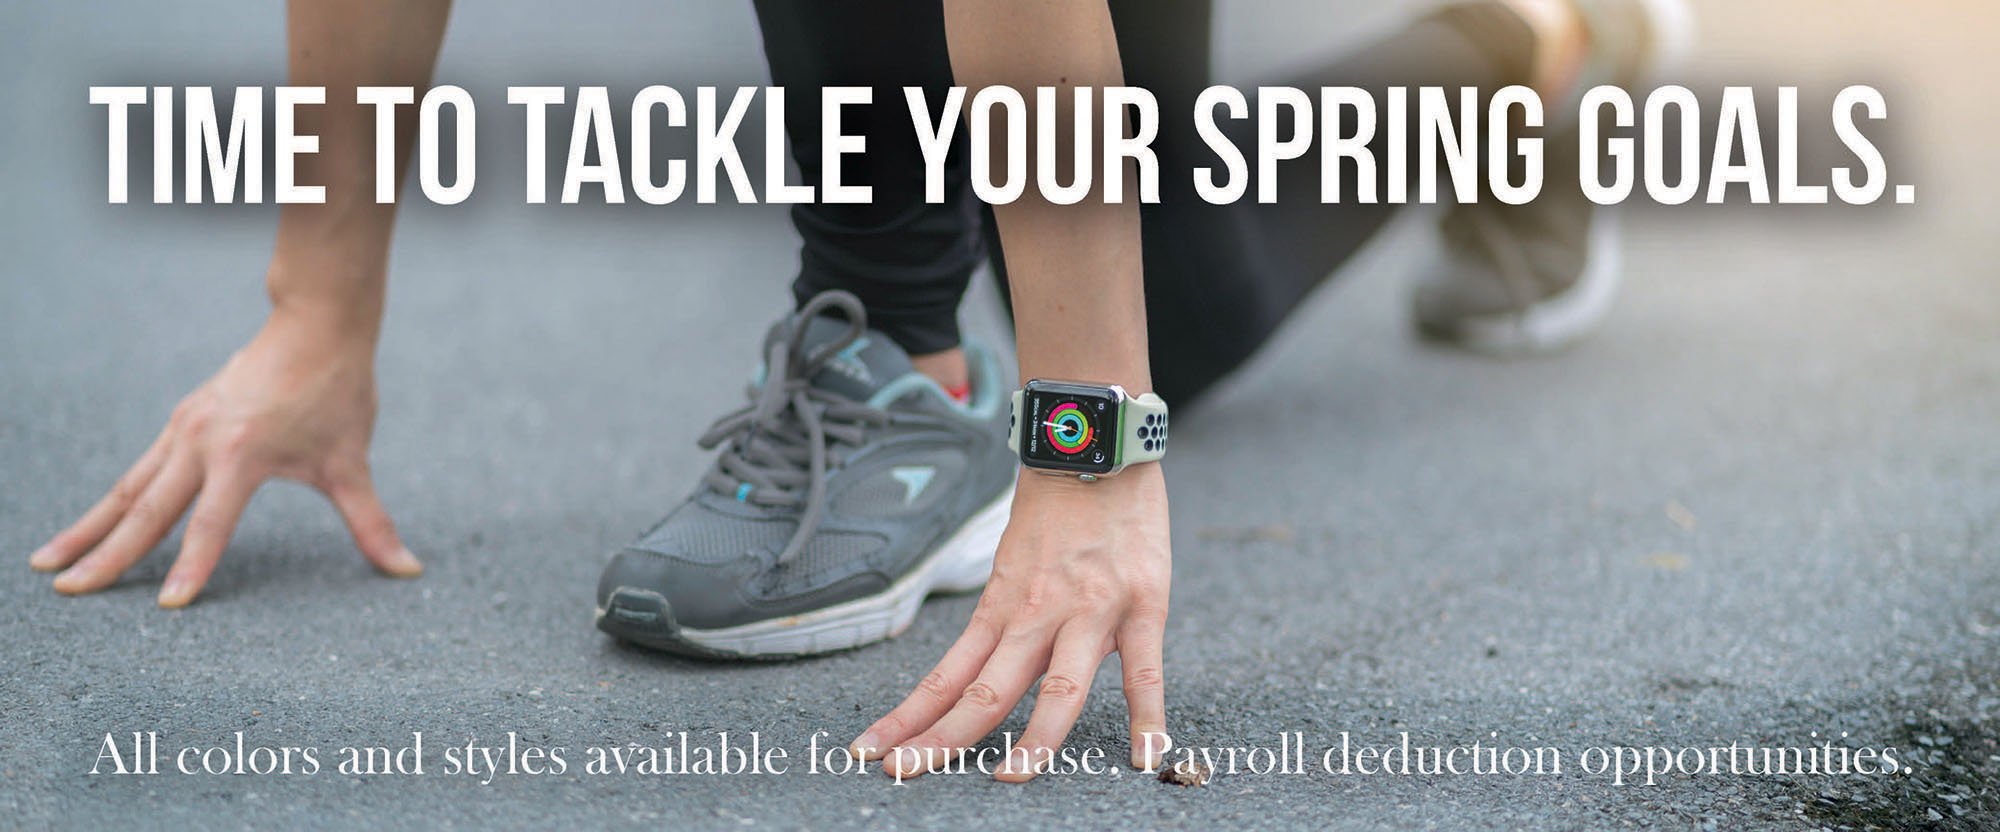 tackle your spring goals with an apple watch